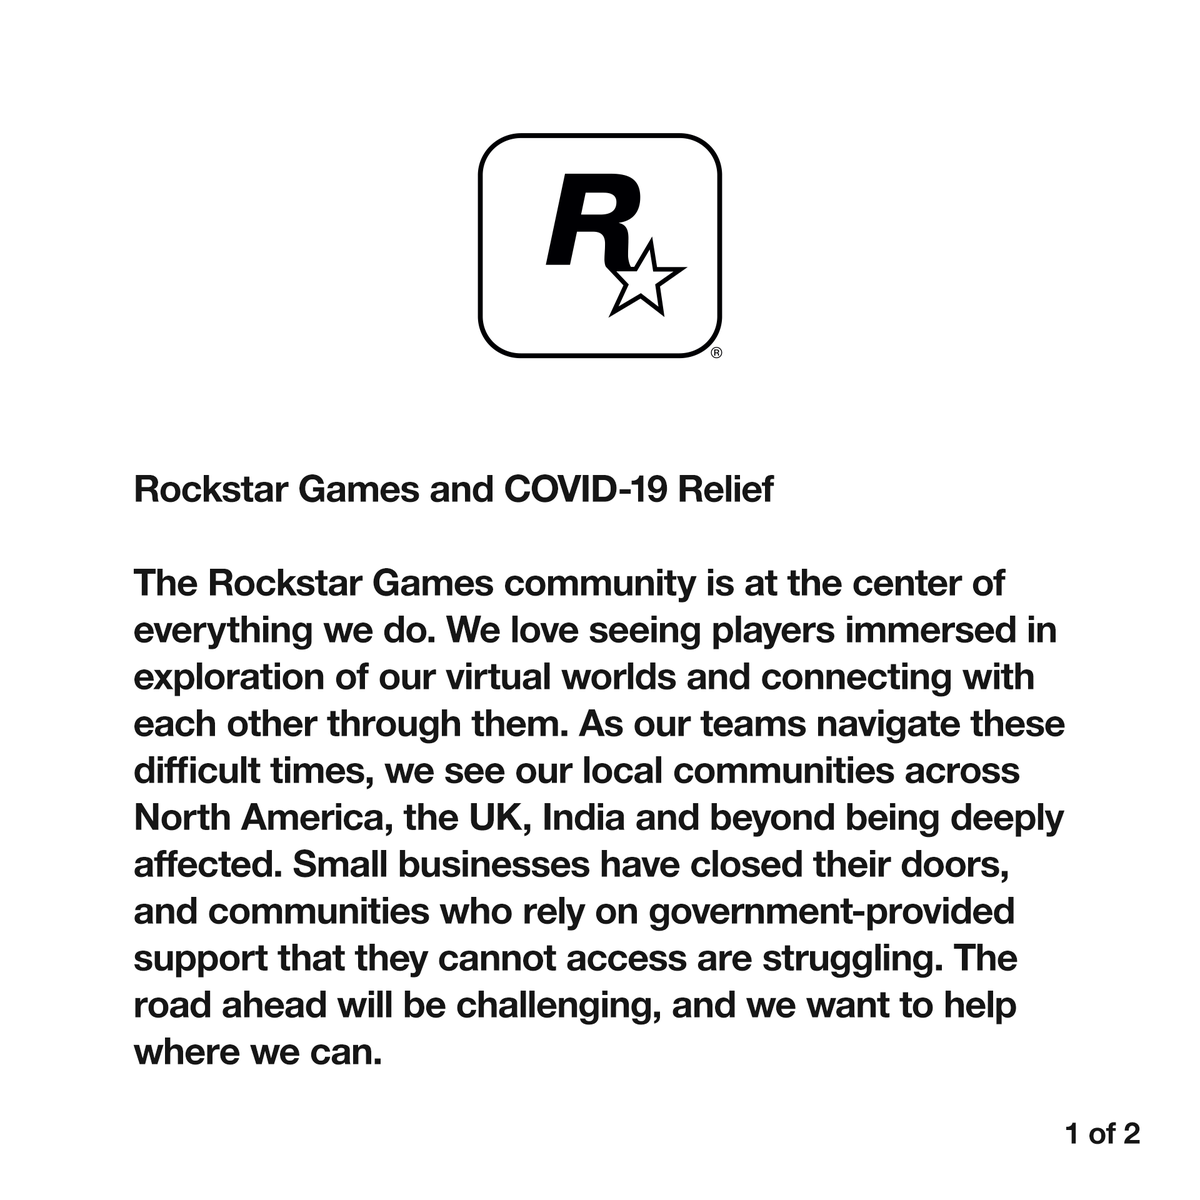 Rockstar Games and COVID-19 Relief